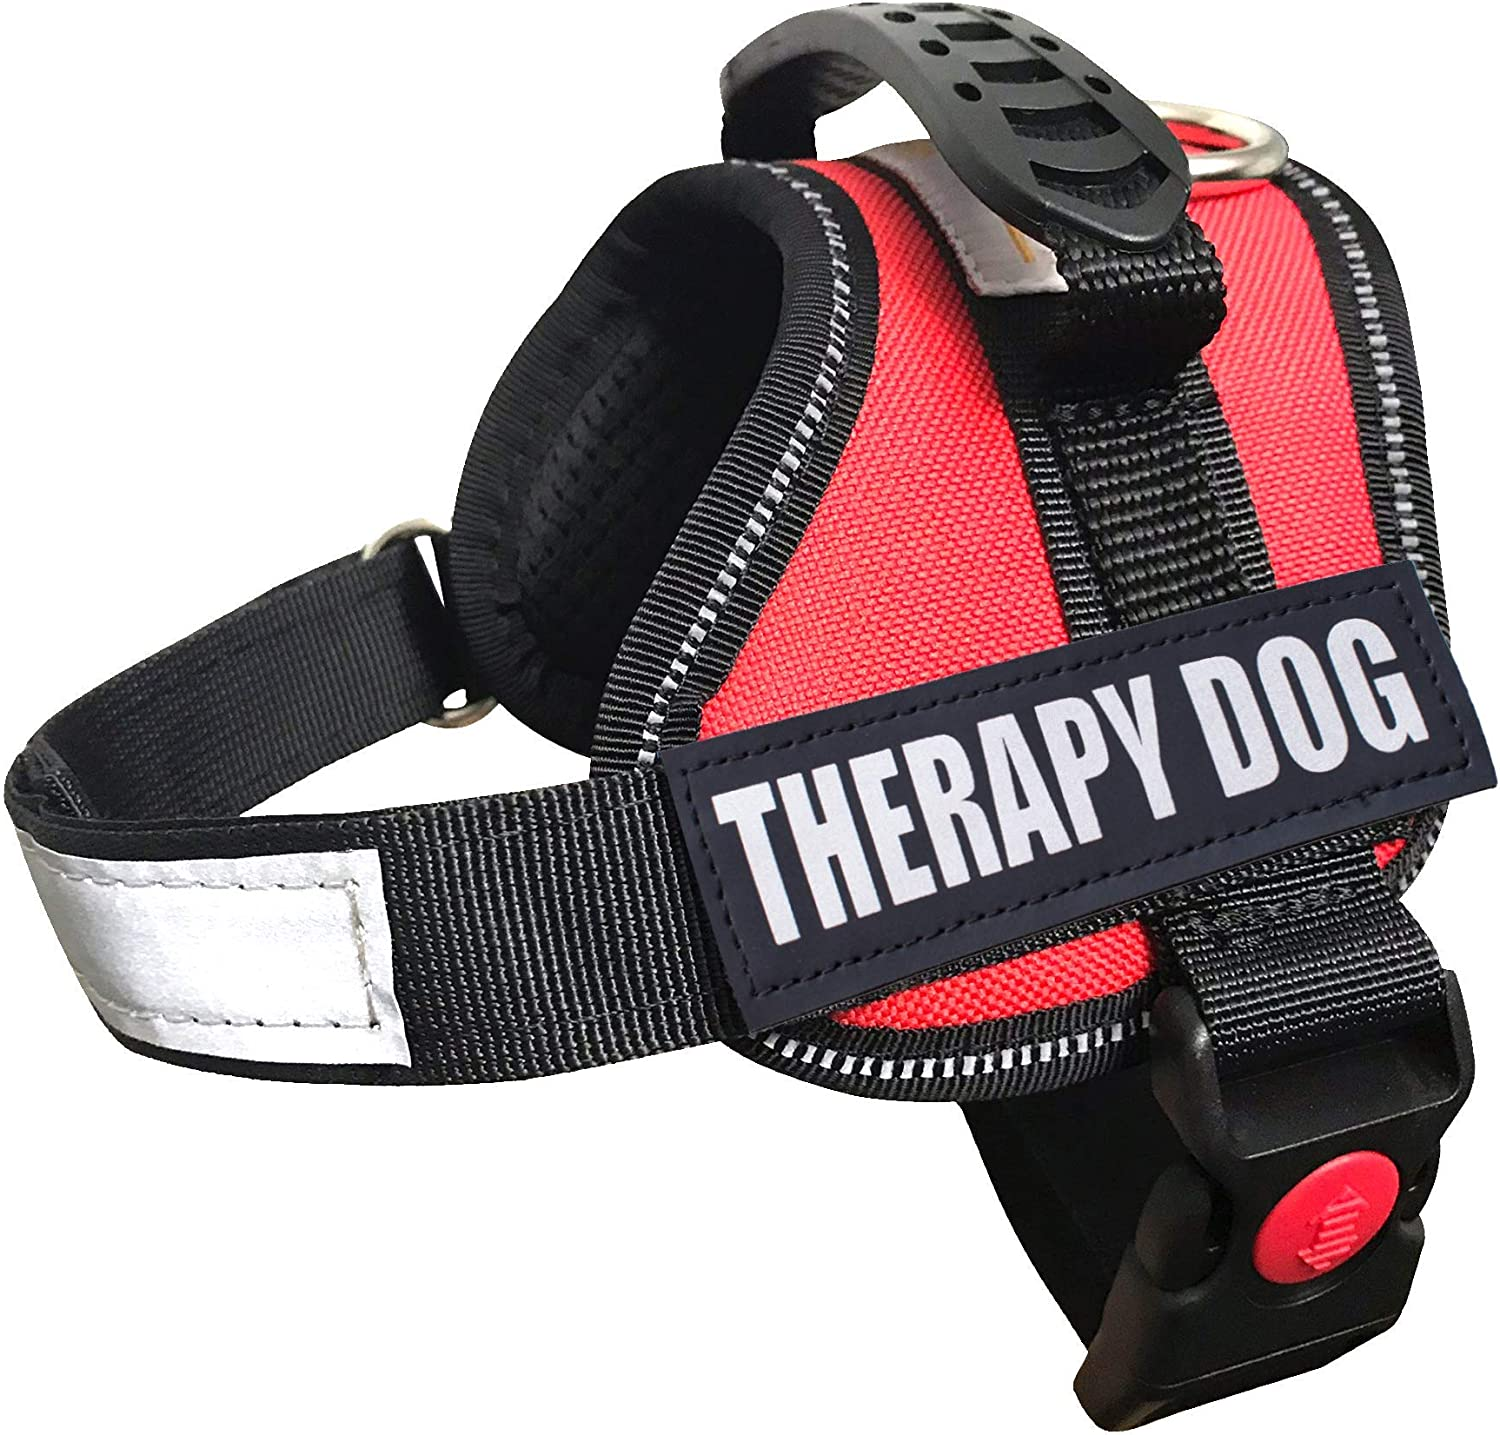 ALBCORP Reflective Therapy Dog Vest